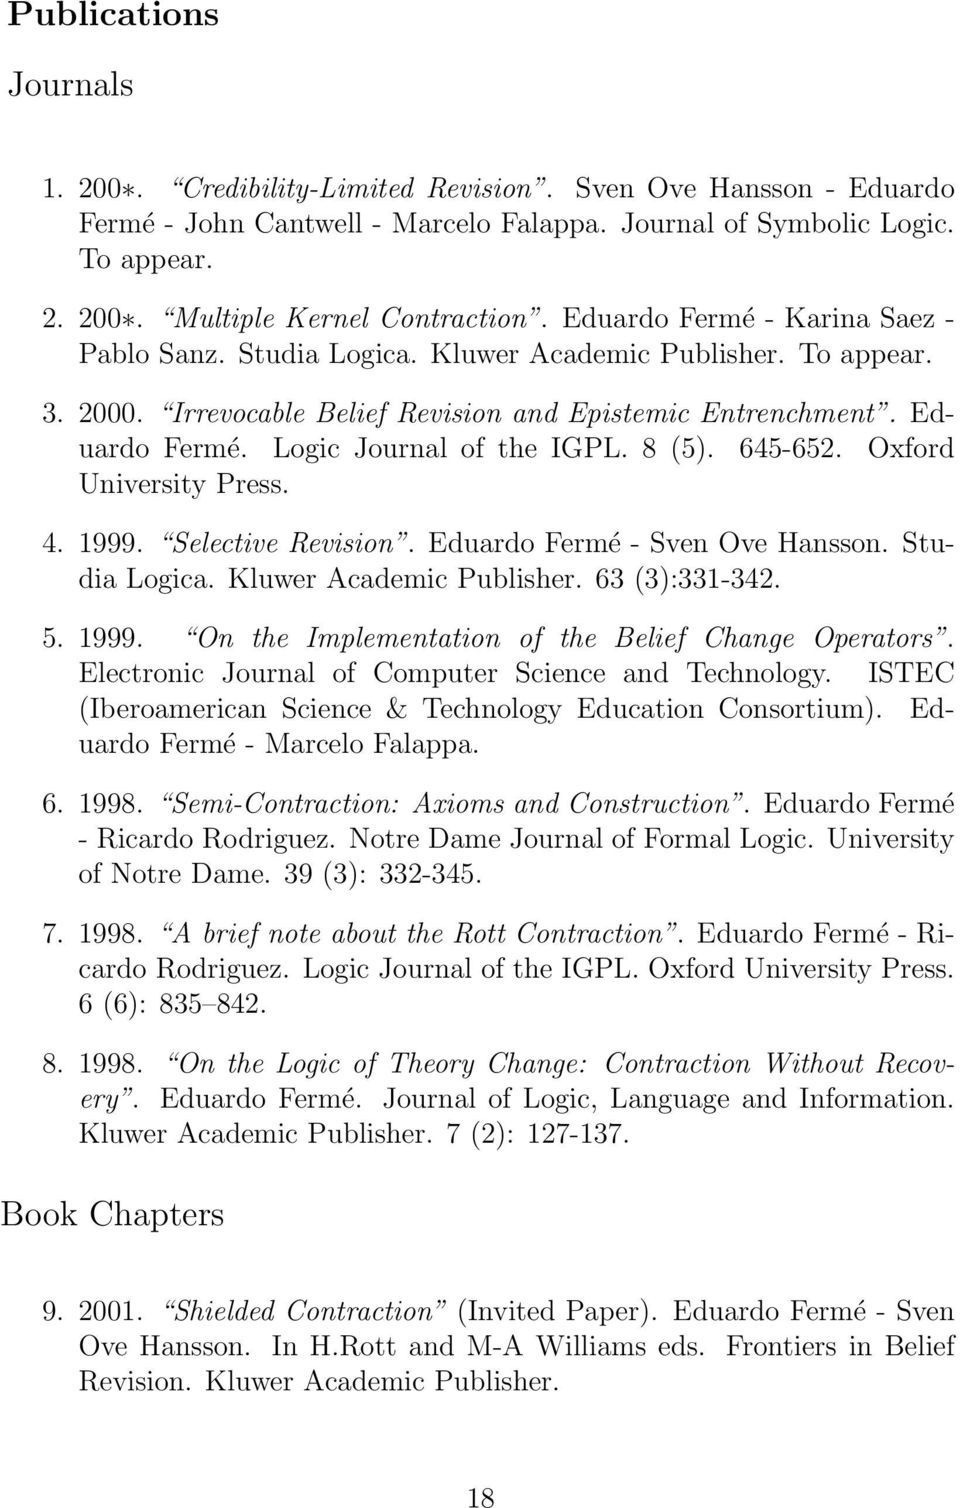 Logic Journal of the IGPL. 8 (5). 645-652. Oxford University Press. 4. 1999. Selective Revision. Eduardo Fermé - Sven Ove Hansson. Studia Logica. Kluwer Academic Publisher. 63 (3):331-342. 5. 1999. On the Implementation of the Belief Change Operators.